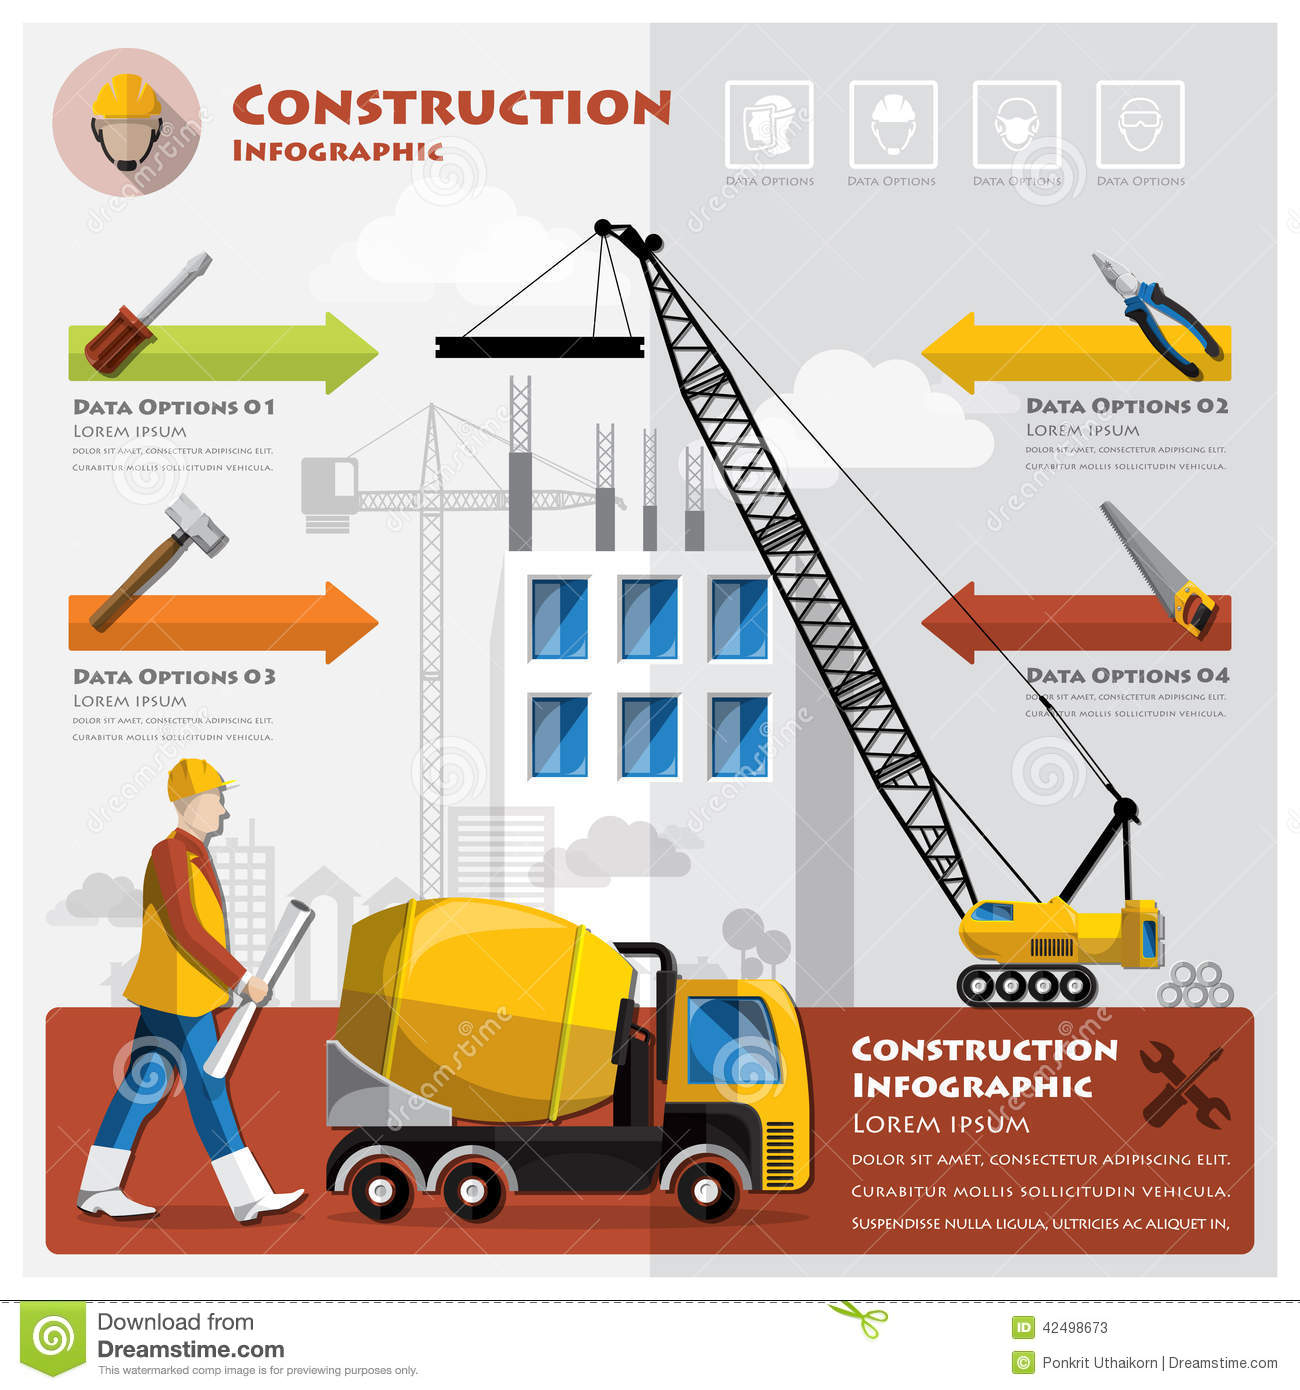 Infographic Design and Construction